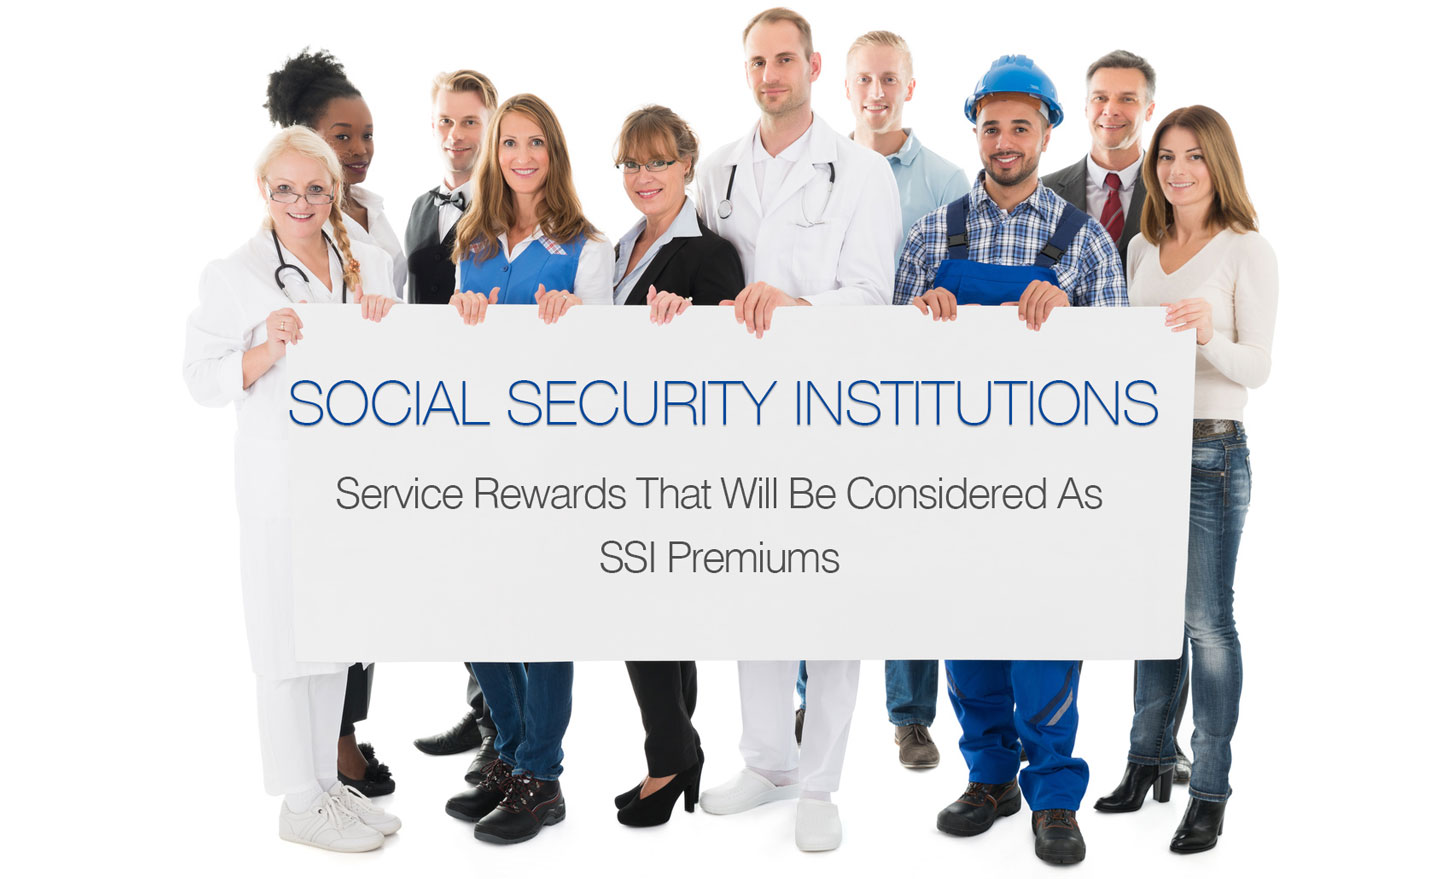 SERVICE REWARDS THAT WILL BE CONSIDERED AS SSI PREMIUMS